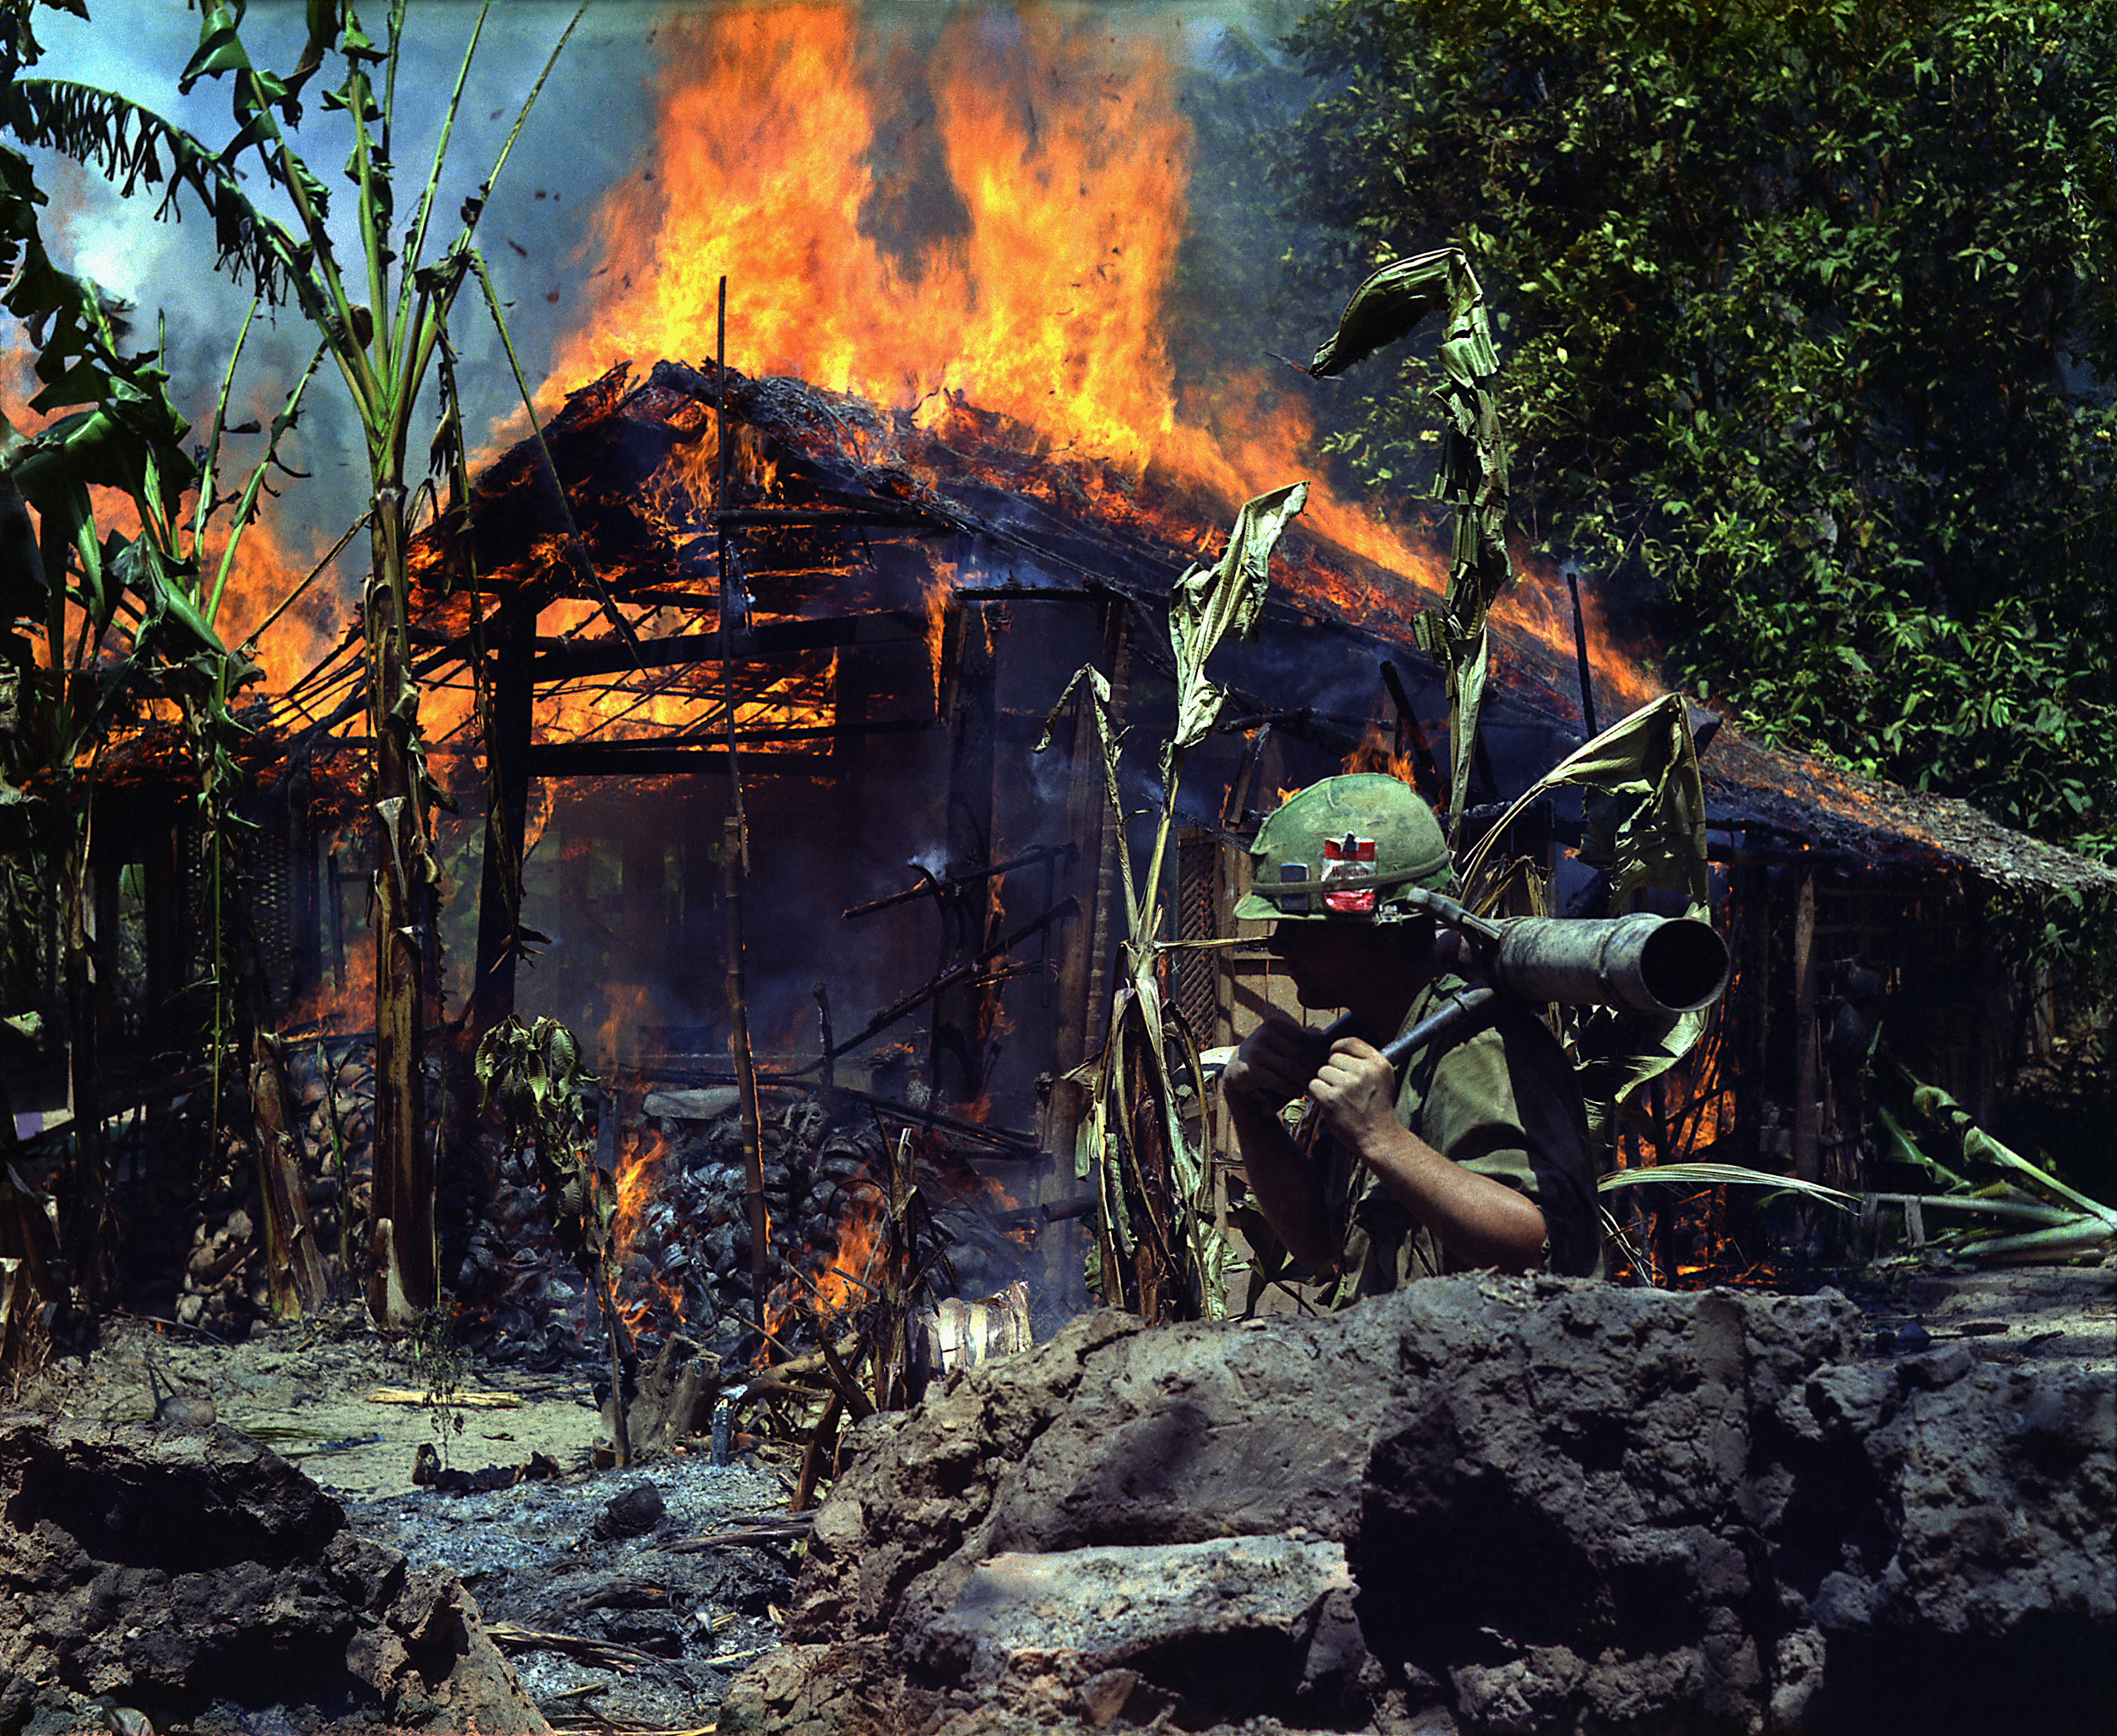 My Tho, Vietnam. A Viet Cong base camp being. In the foreground is Private First Class Raymond Rumpa, St Paul, Minnesota - NARA - 530621 edit